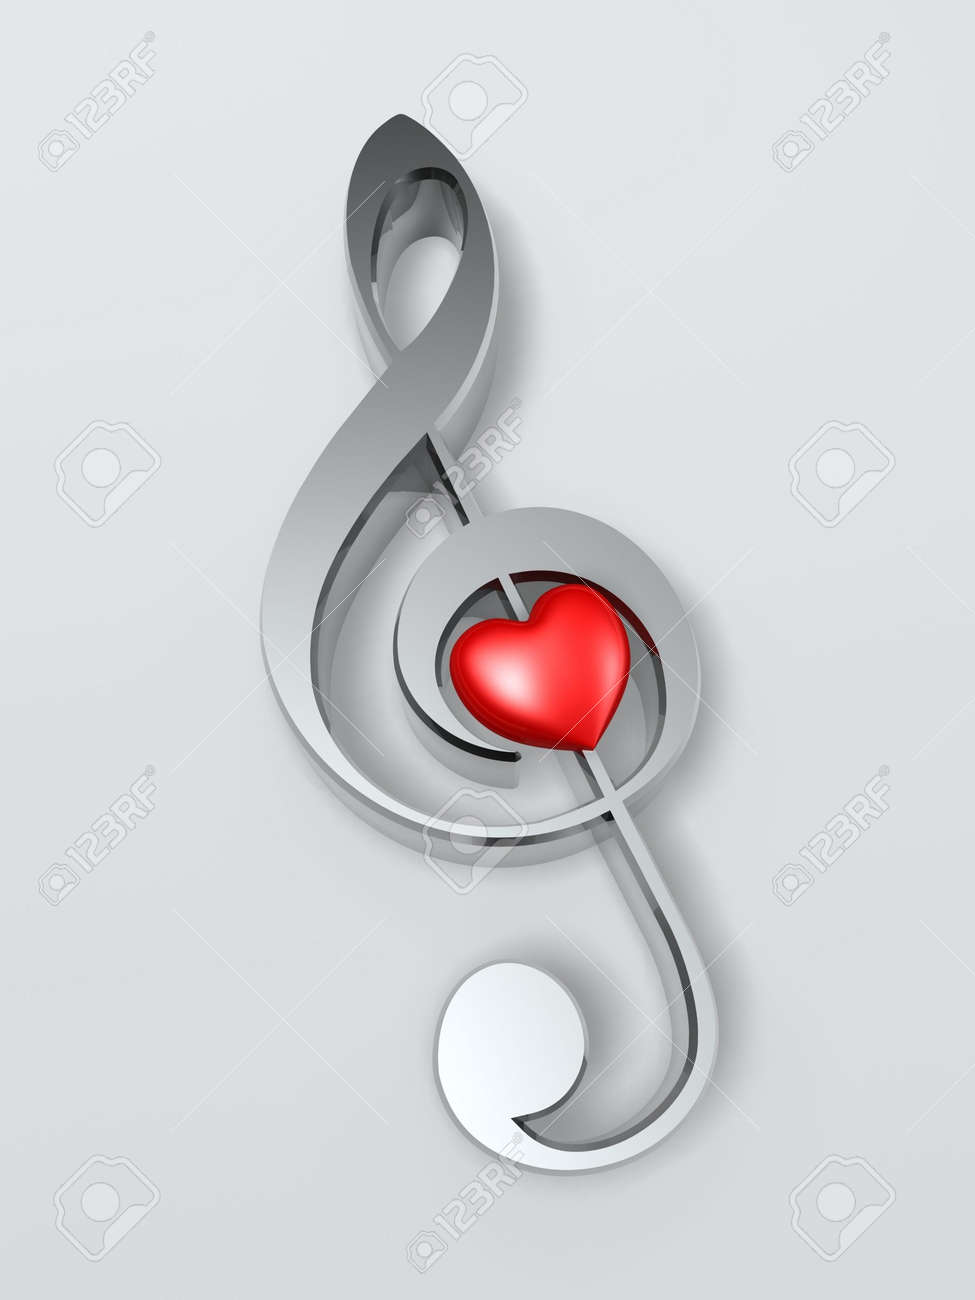 Music symbol and heart isolated on white background stock photo music symbol and heart isolated on white background stock photo 6548685 biocorpaavc Images